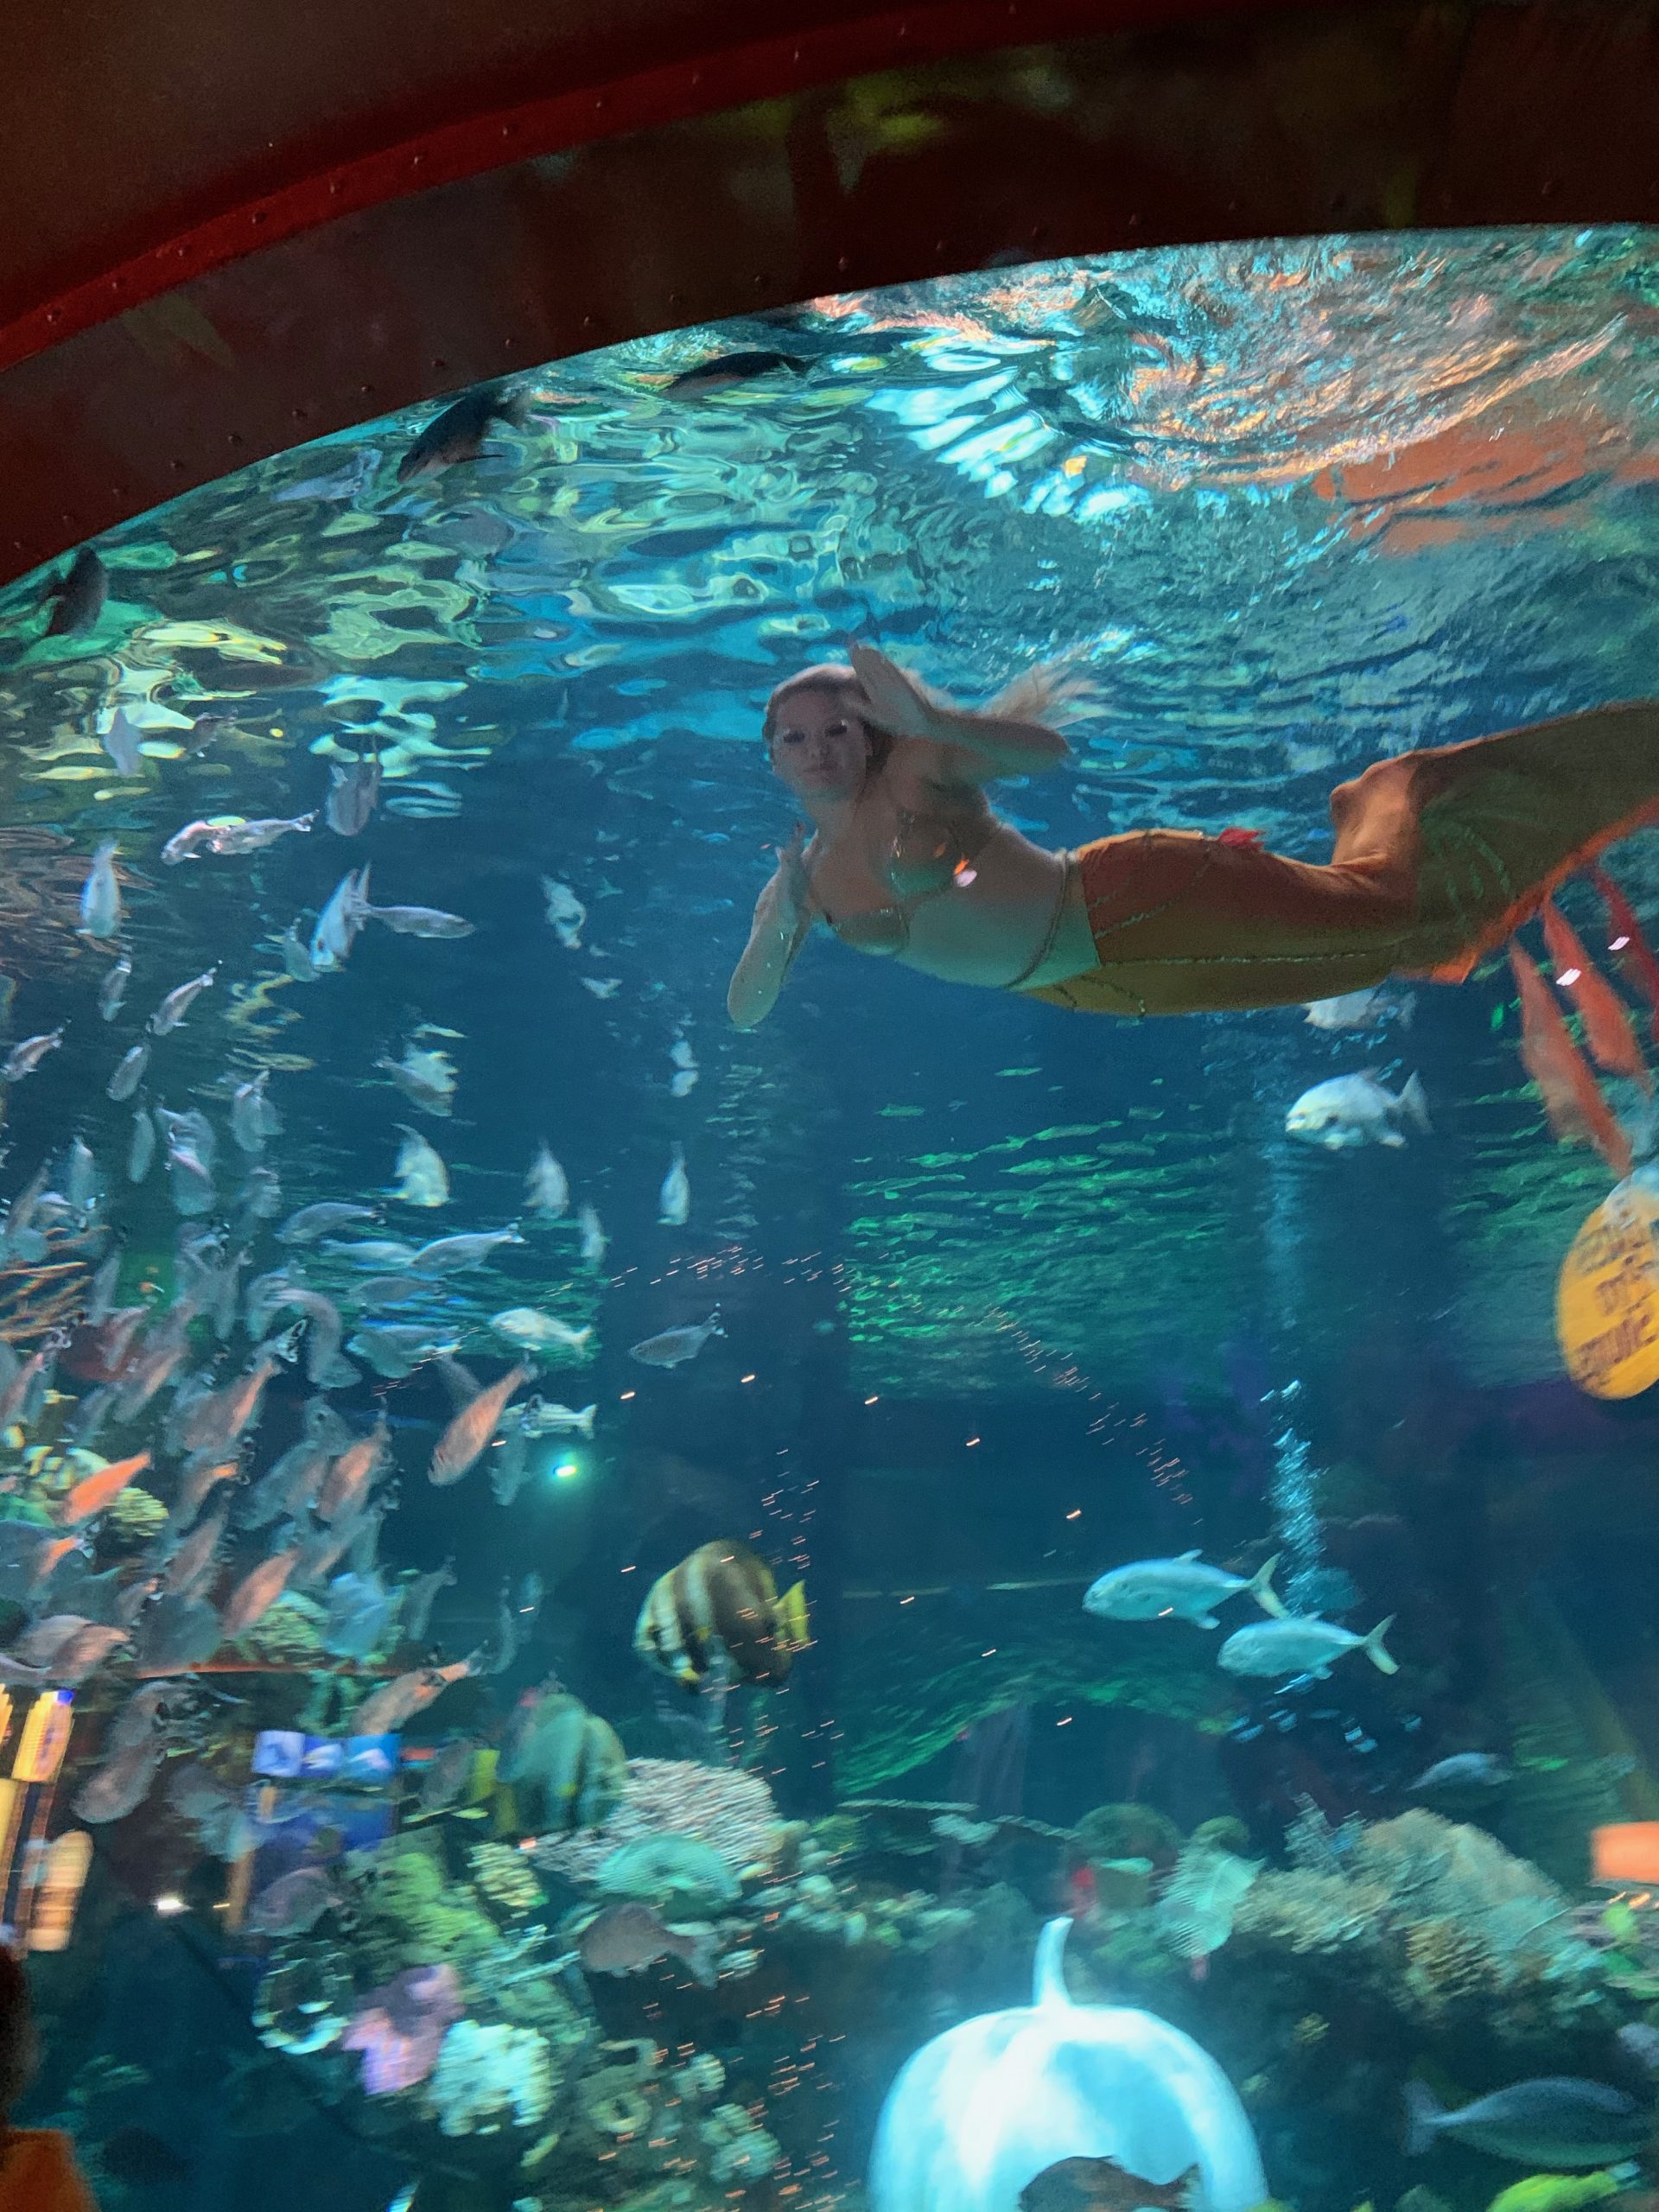 Live Mermaid show at Bass Pro Shops